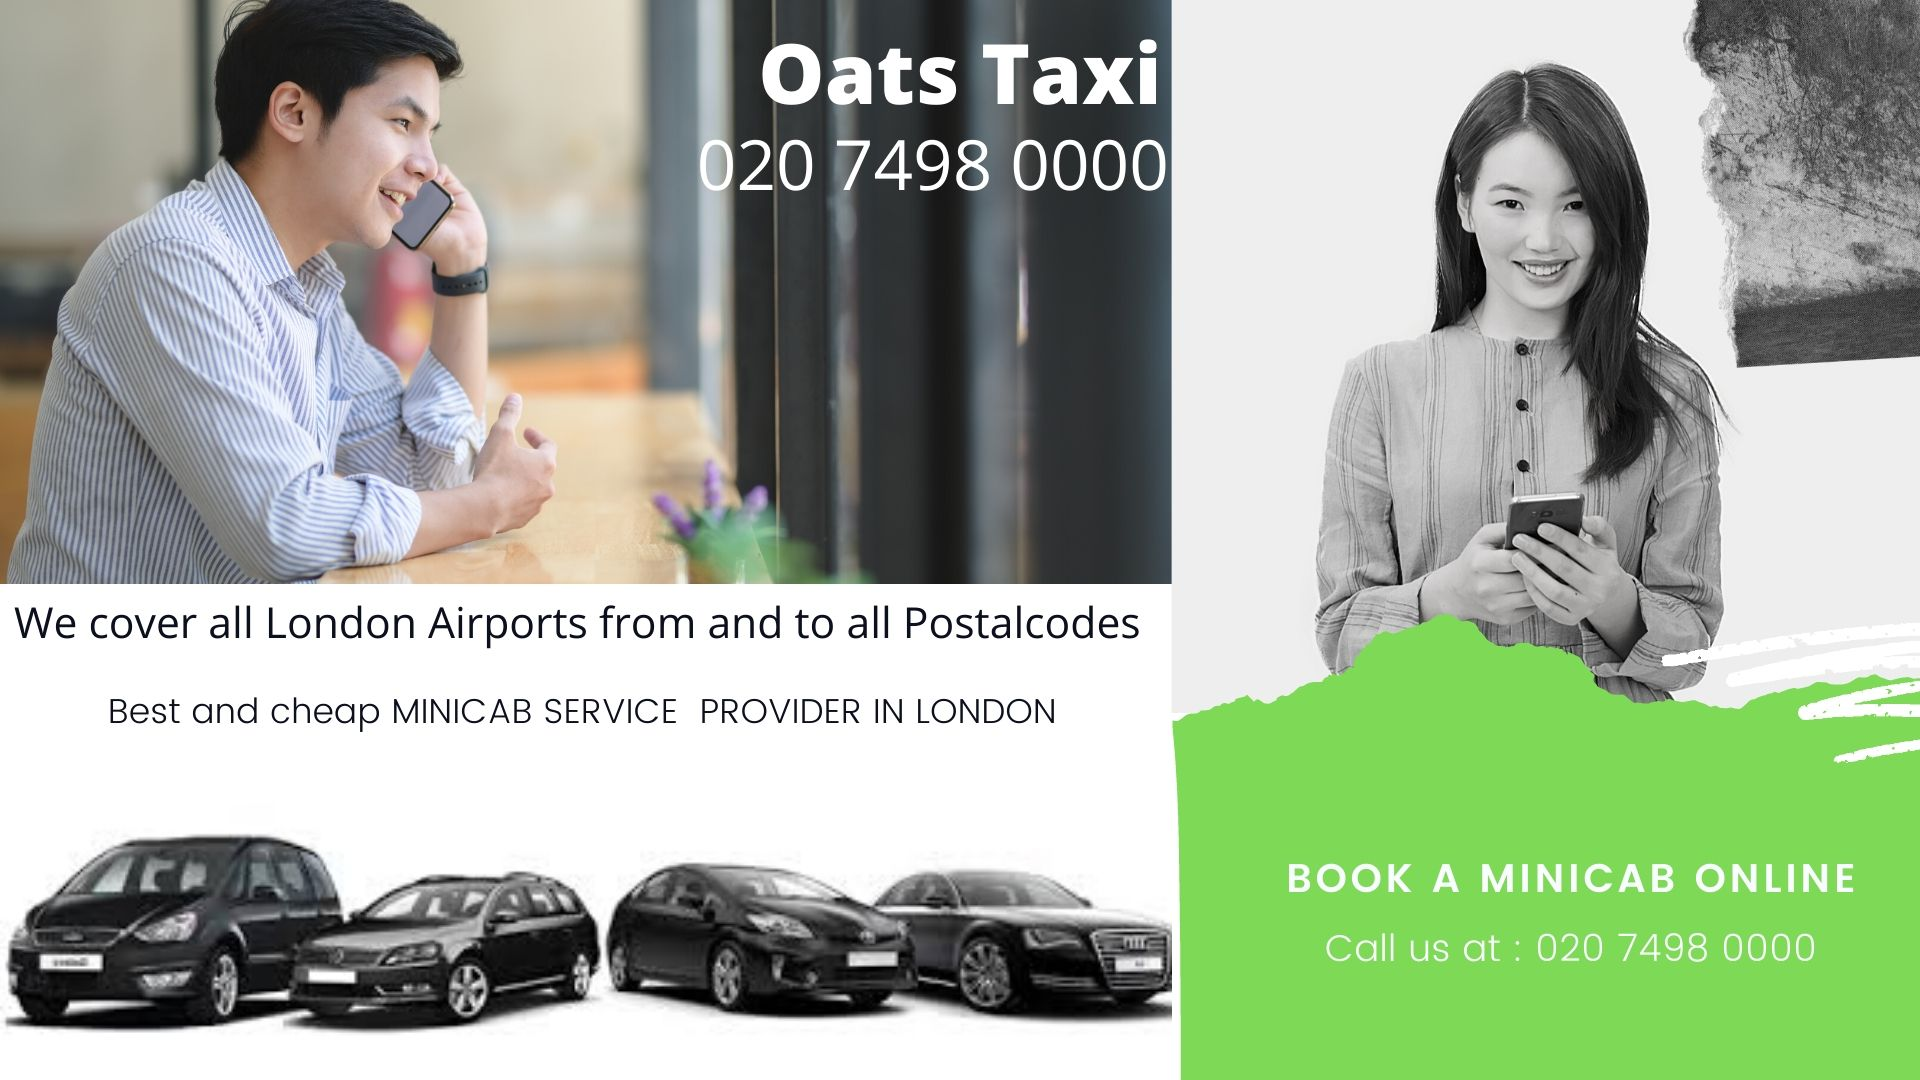 Taxi Office Near EVERSLEIGH ROAD, Battersea SW11, Taxi From Battersea SW11 To Gatwick Airport